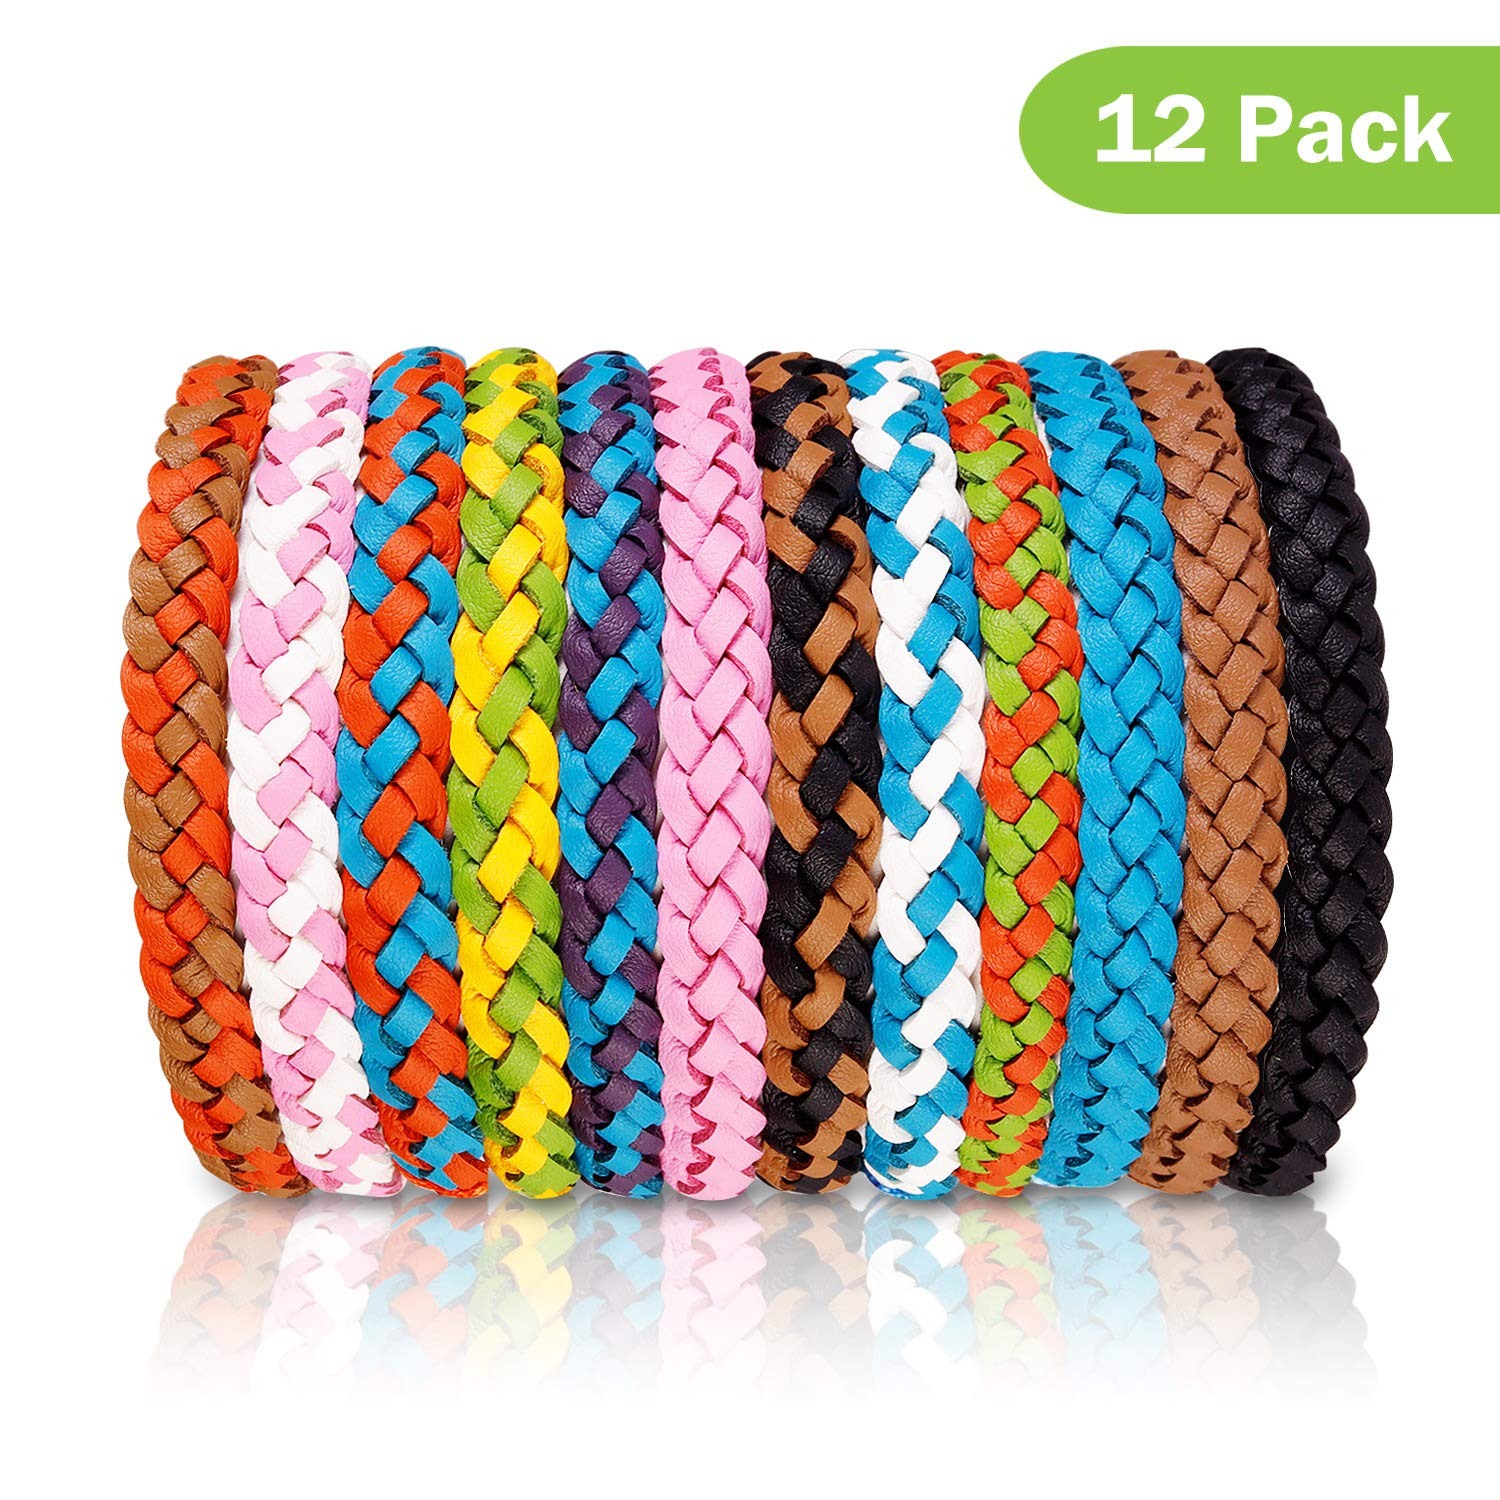 FULNEW Mosquito Repellent Bracelet 12 Pack Bug & Insect Repellent Bracelet 100% Natural DEET-Free Non Toxic Pest Control for Camping, Hiking, Outdoors by FULNEW